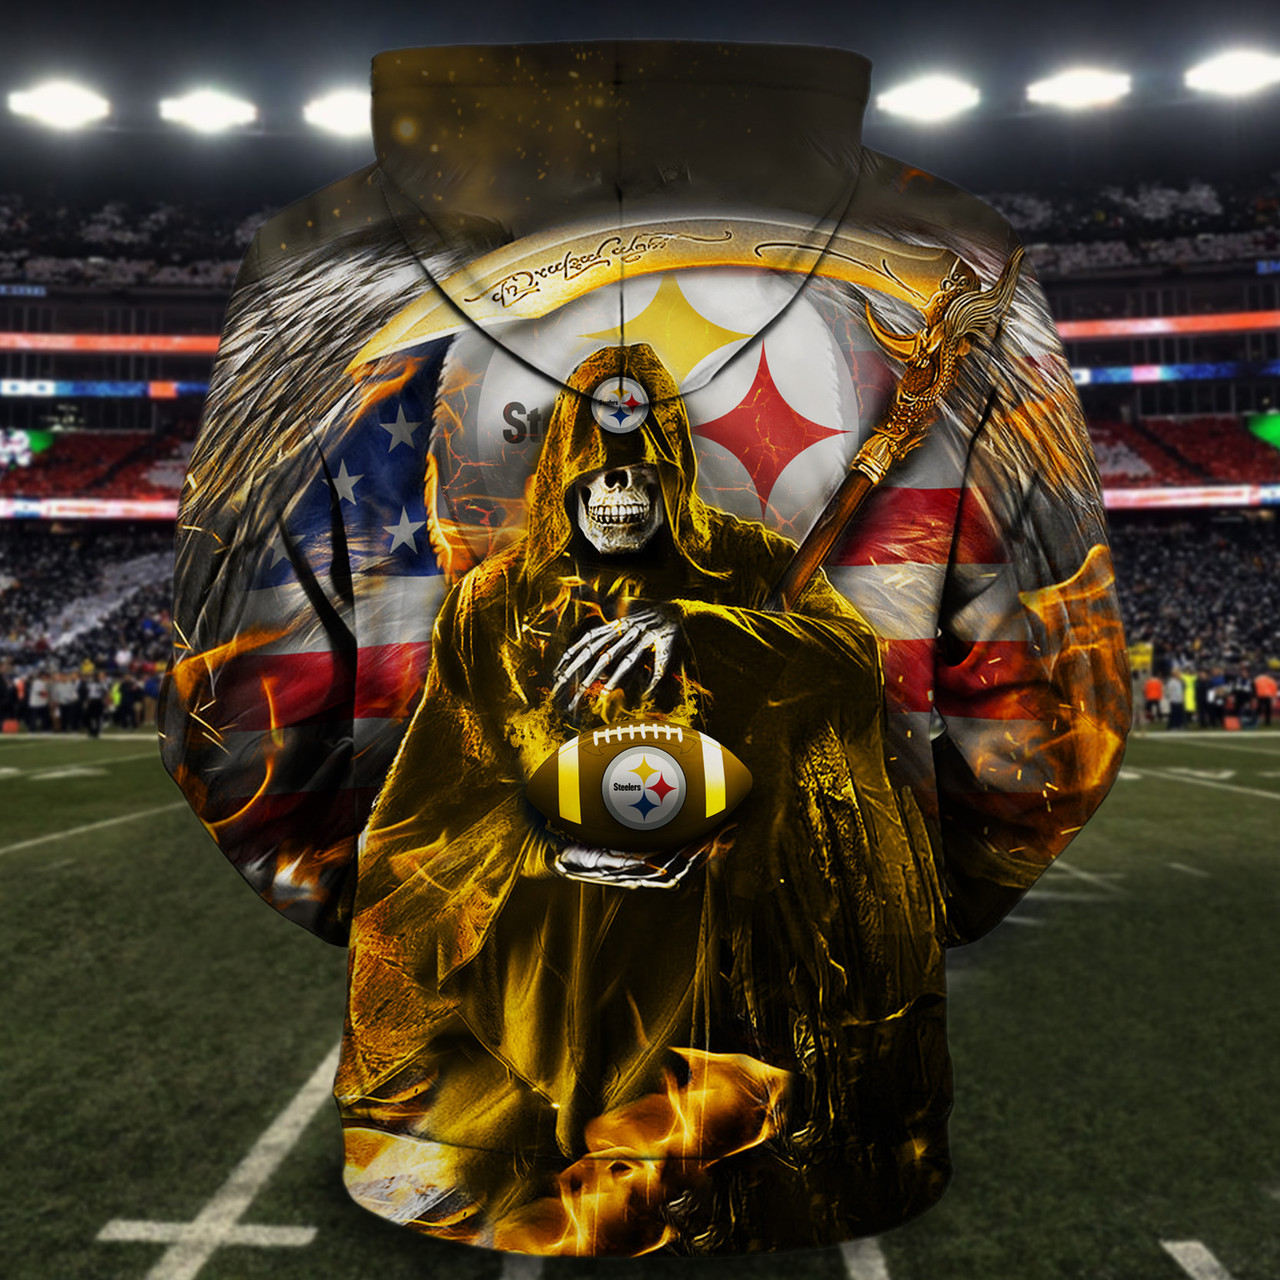 **(OFFICIAL-N.F.L.PITTSBURGH-STEELERS-PULLOVER-HOODIES/3D-CUSTOM-STEELERS-LOGOS & OFFICIAL-STEELERS-TEAM-COLORS/PATRIOTIC-GRIMM-REAPER & SUDDEN-DEATH/CUSTOM-3D-GRAPHIC-PRINTED-DOUBLE-SIDED-DESIGN/TRENDY-WARM-PREMIUM-N.F.L.STEELERS-PULLOVER-HOODIES)**